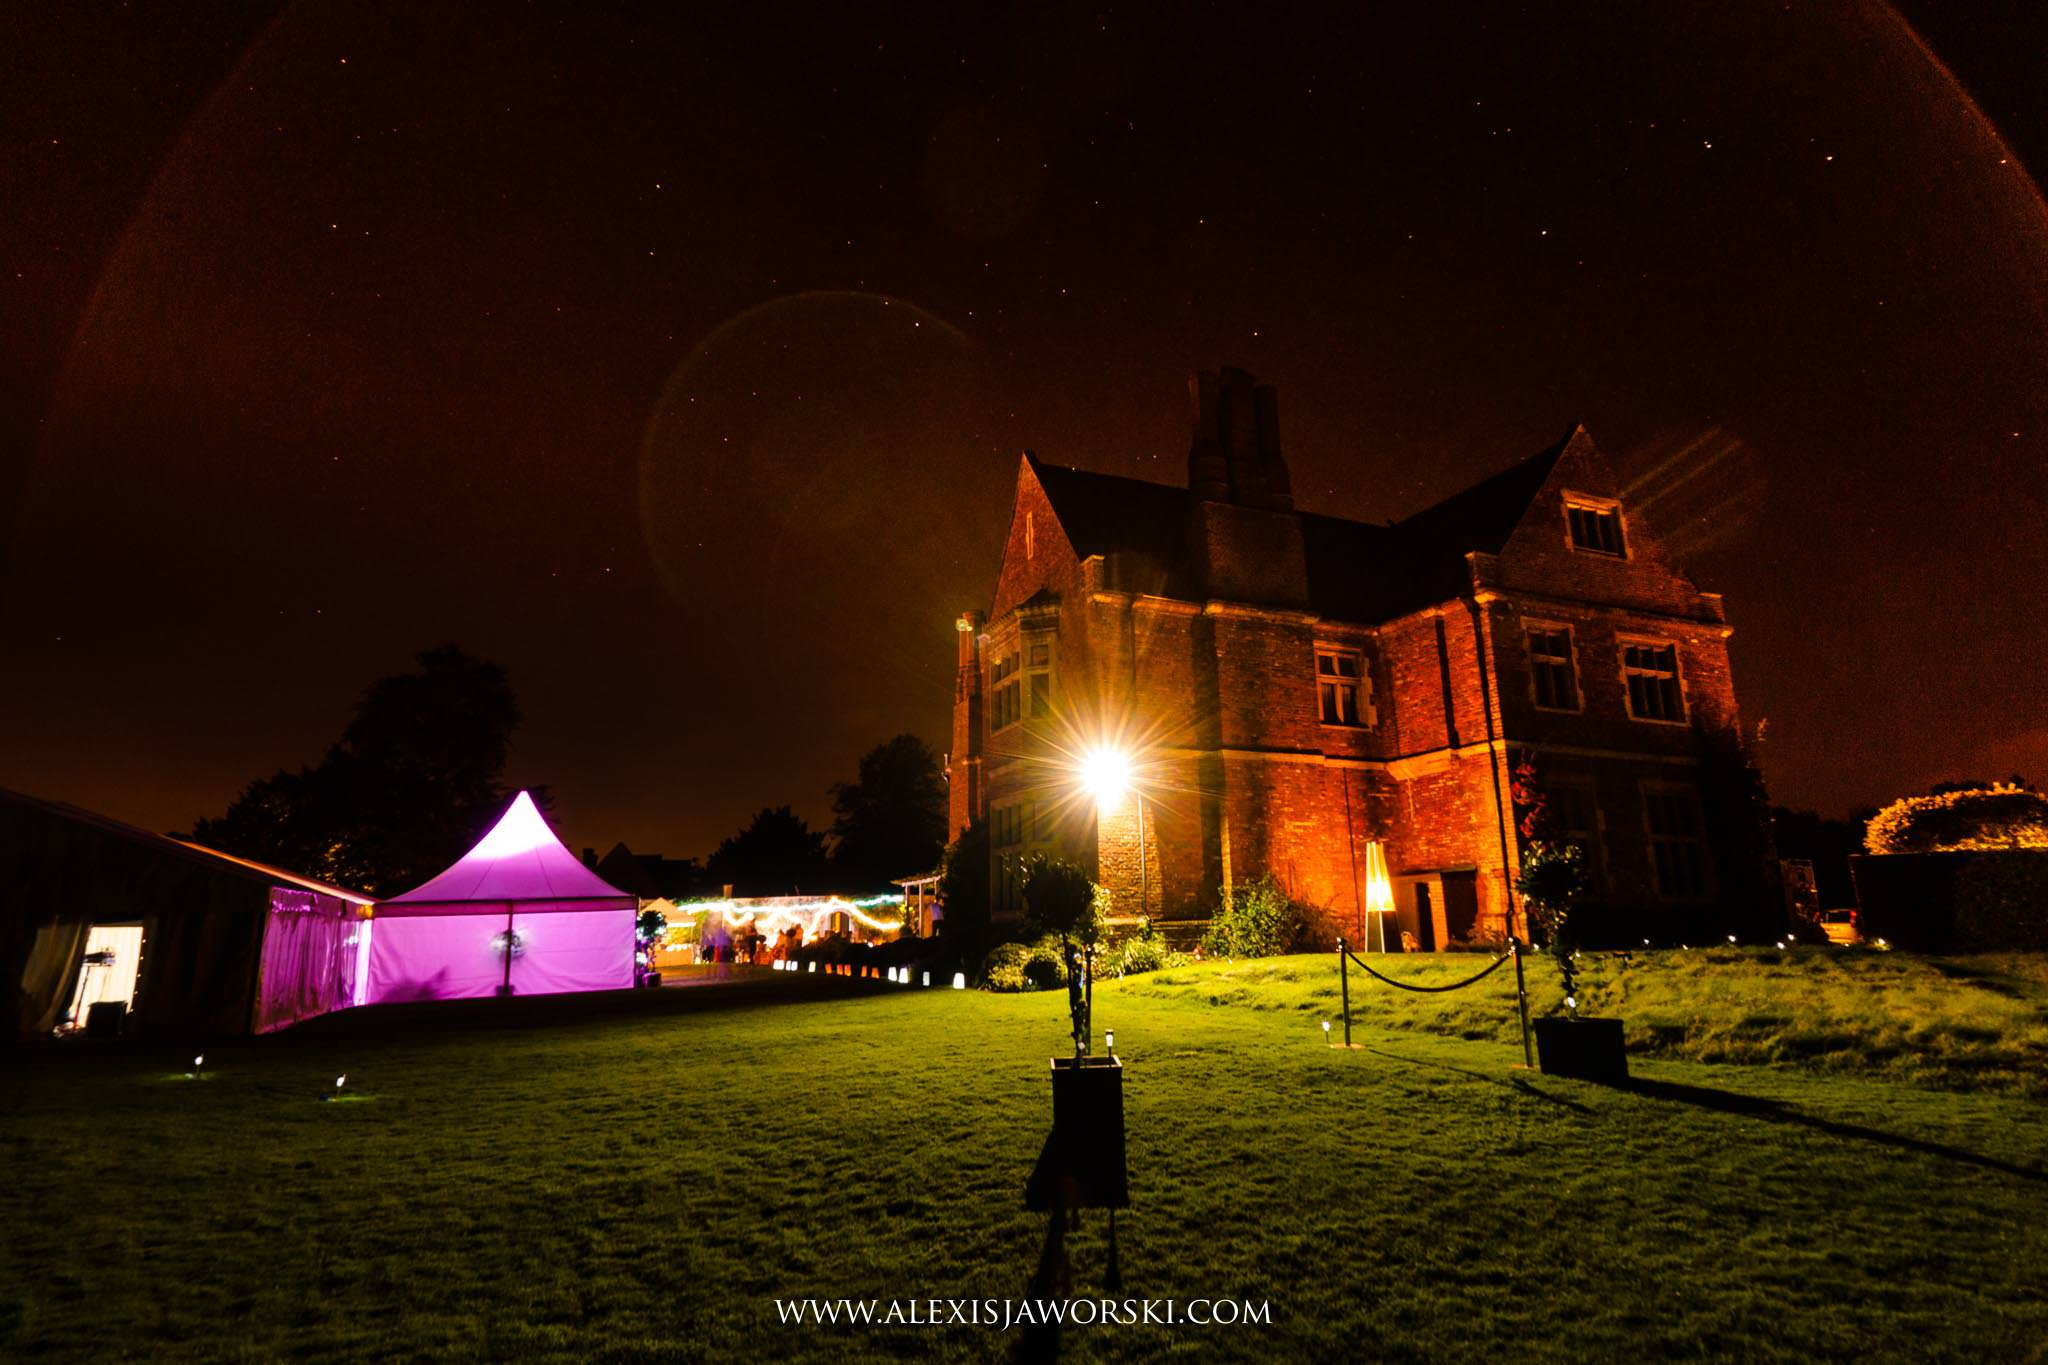 the venue at night